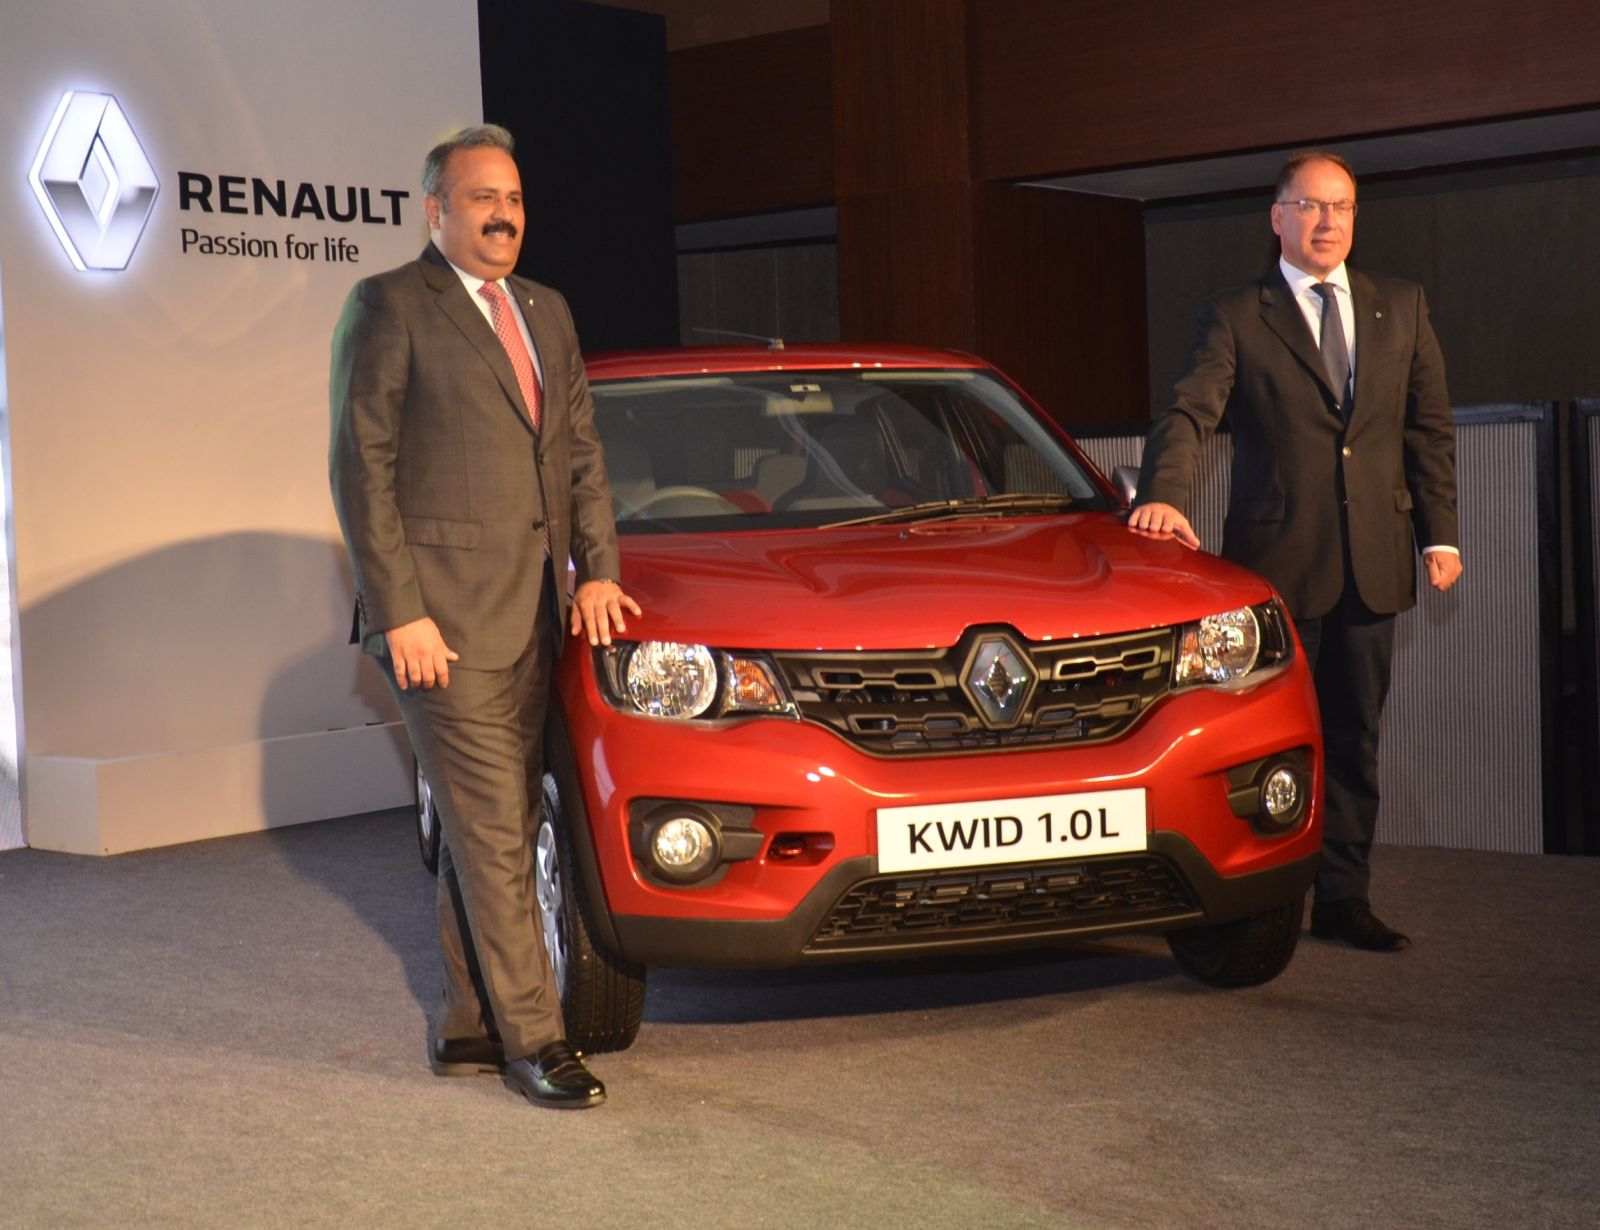 Official Renault Kwid 1.0L launched in India at INR 3,82,776 (Ex-showroom, Delhi)